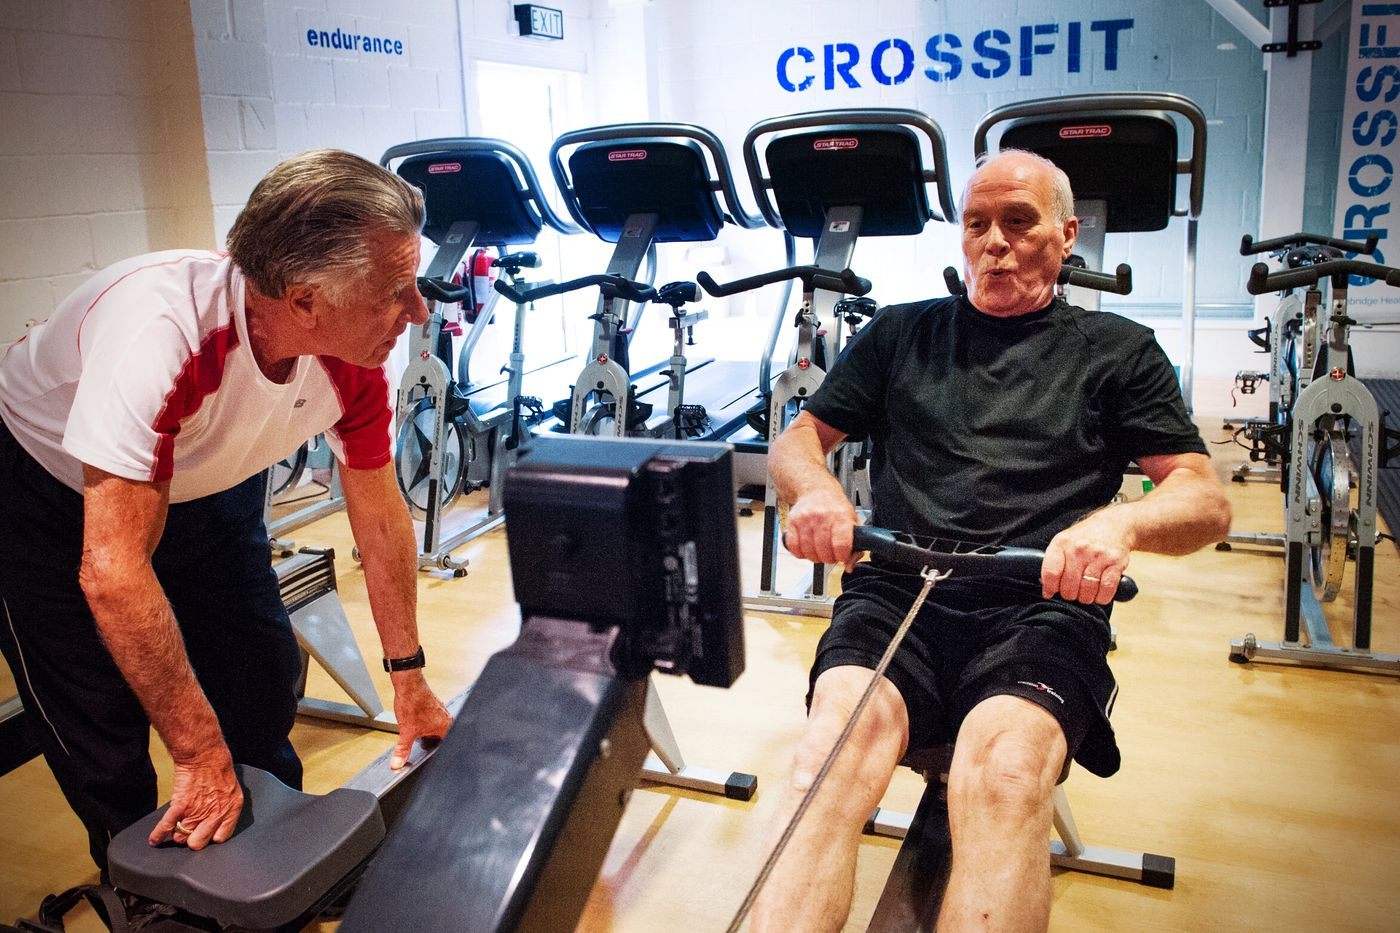 CrossFit's founder Greg Glassman is amassing a doctor army to